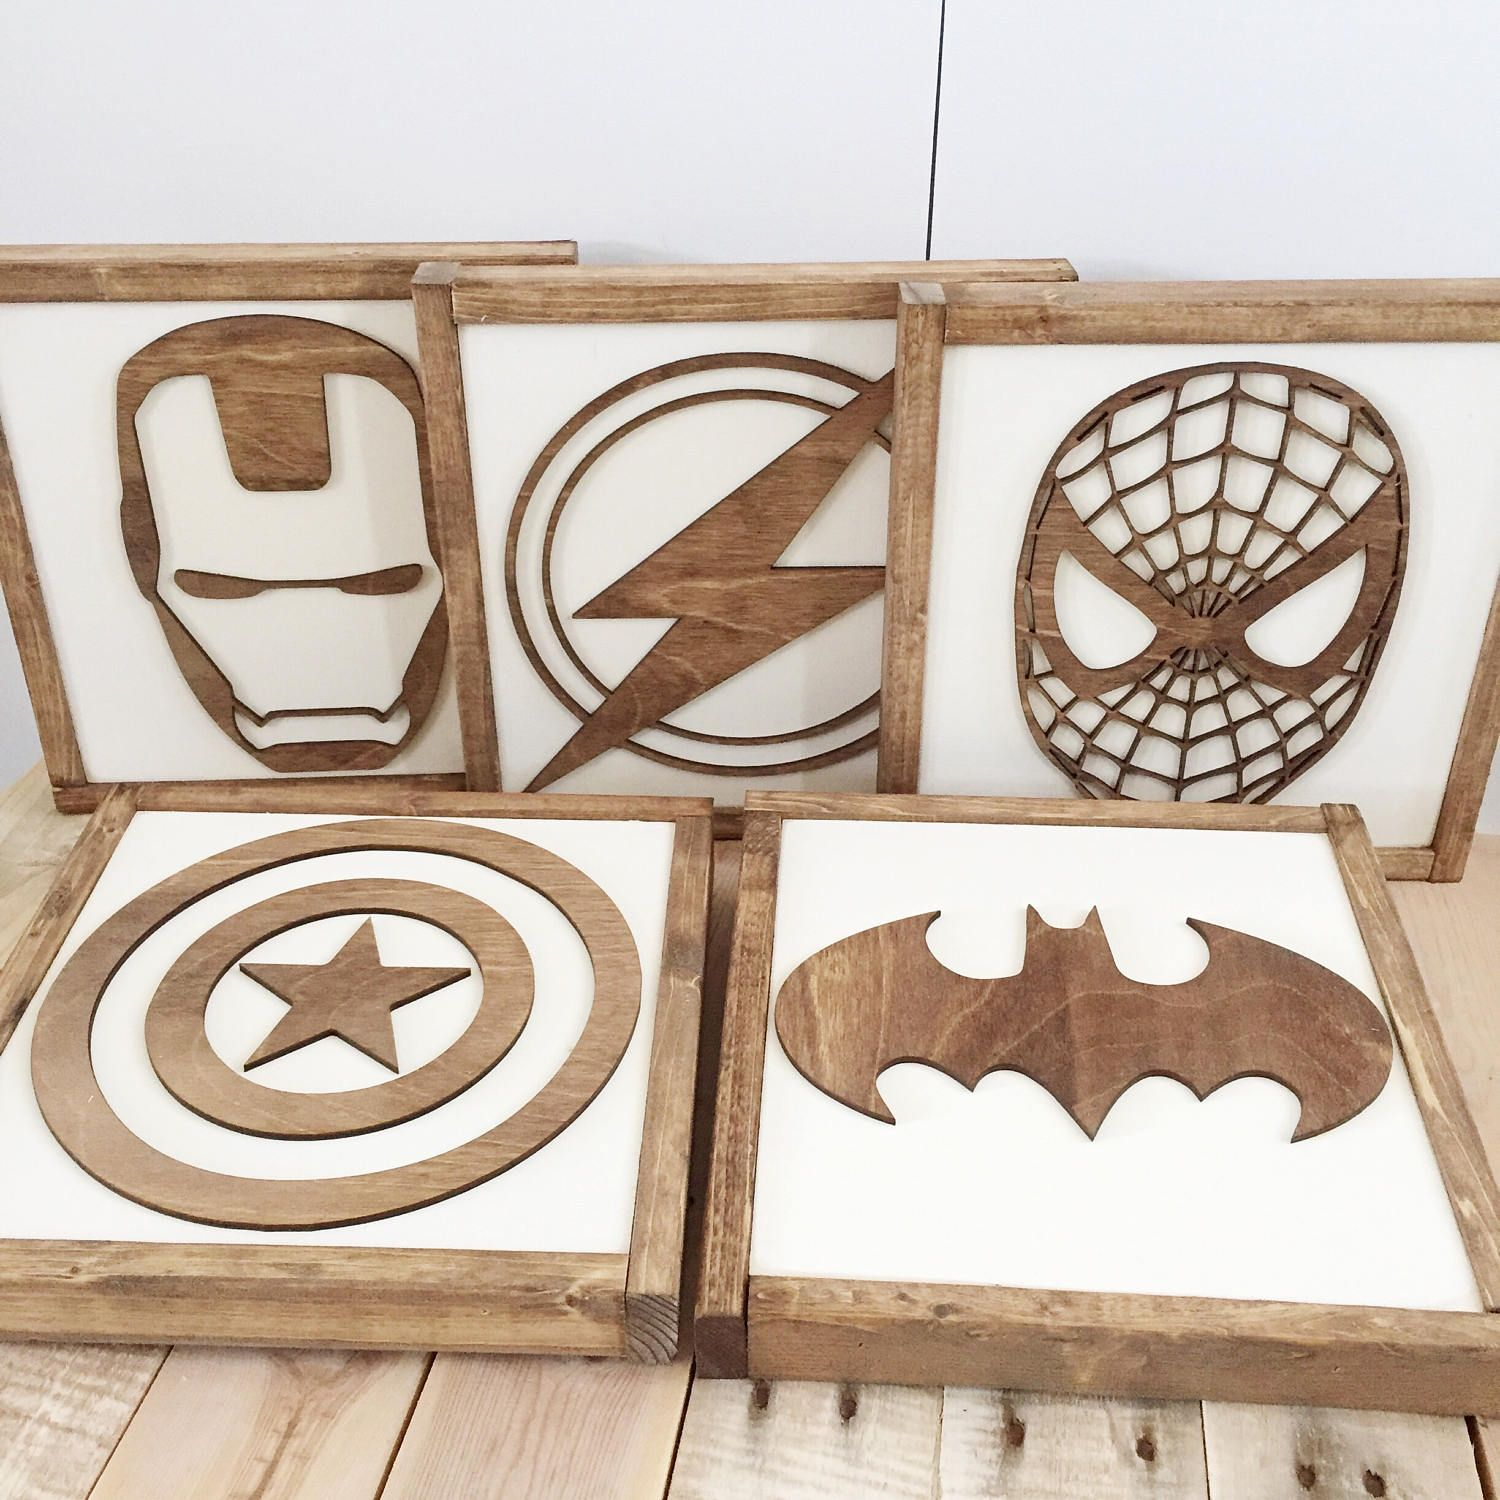 Superhero Sign- Walnut Stain- Superhero Wall Art- Boys Bedroom Decor- Neutral Nursery Decor- Superhero Nursery- Kids Bedroom Decor  sc 1 st  Pinterest : diy wall art for guys - www.pureclipart.com